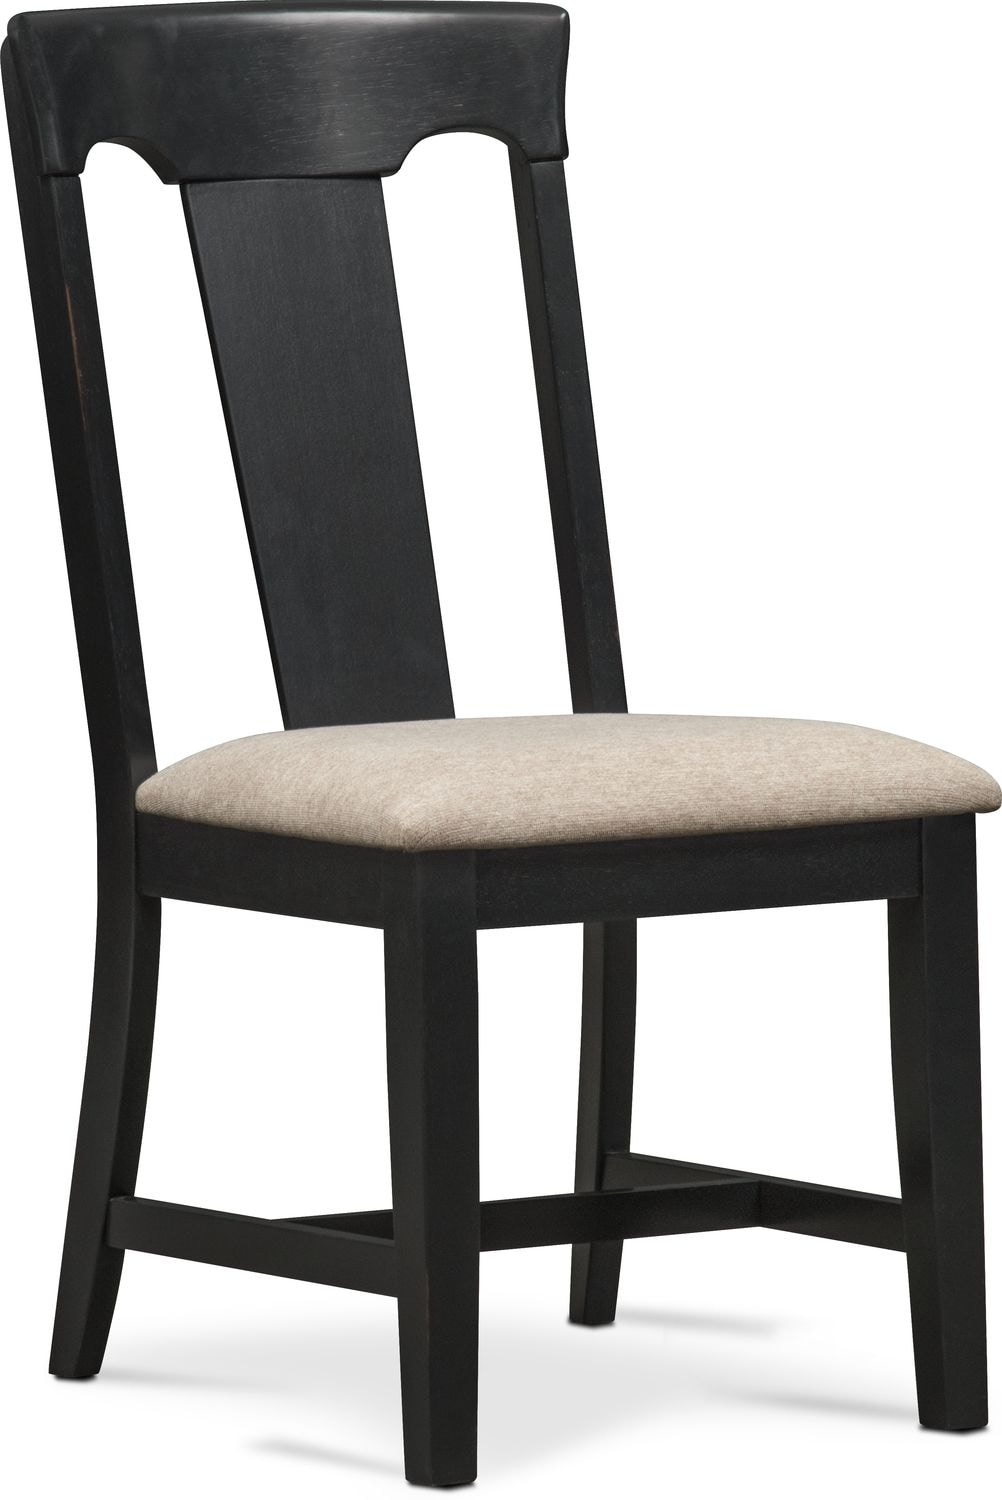 Adler Side Chair - Black  sc 1 st  Value City Furniture : what is a side chair - Cheerinfomania.Com